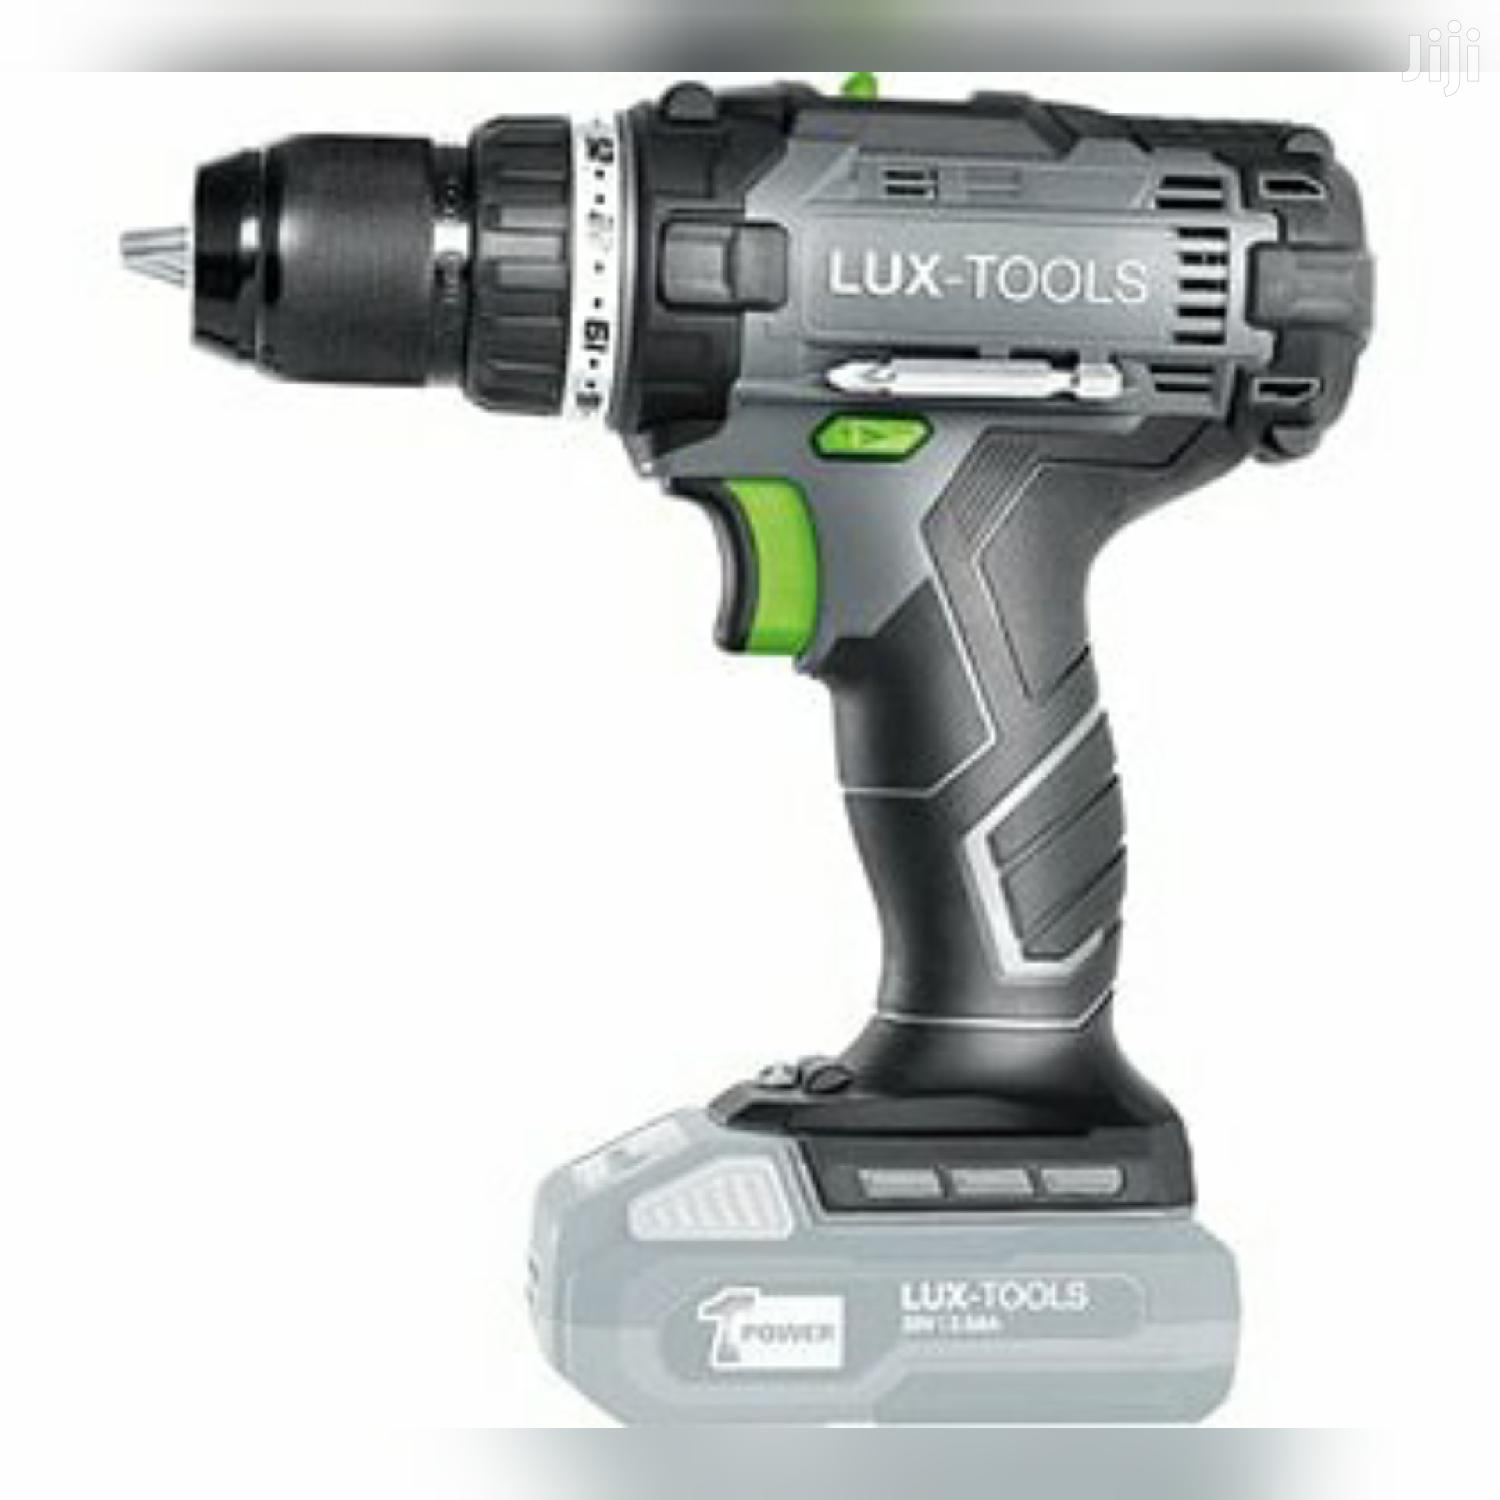 LUX Cordless Drill Screwdriver - 1 Powersystem